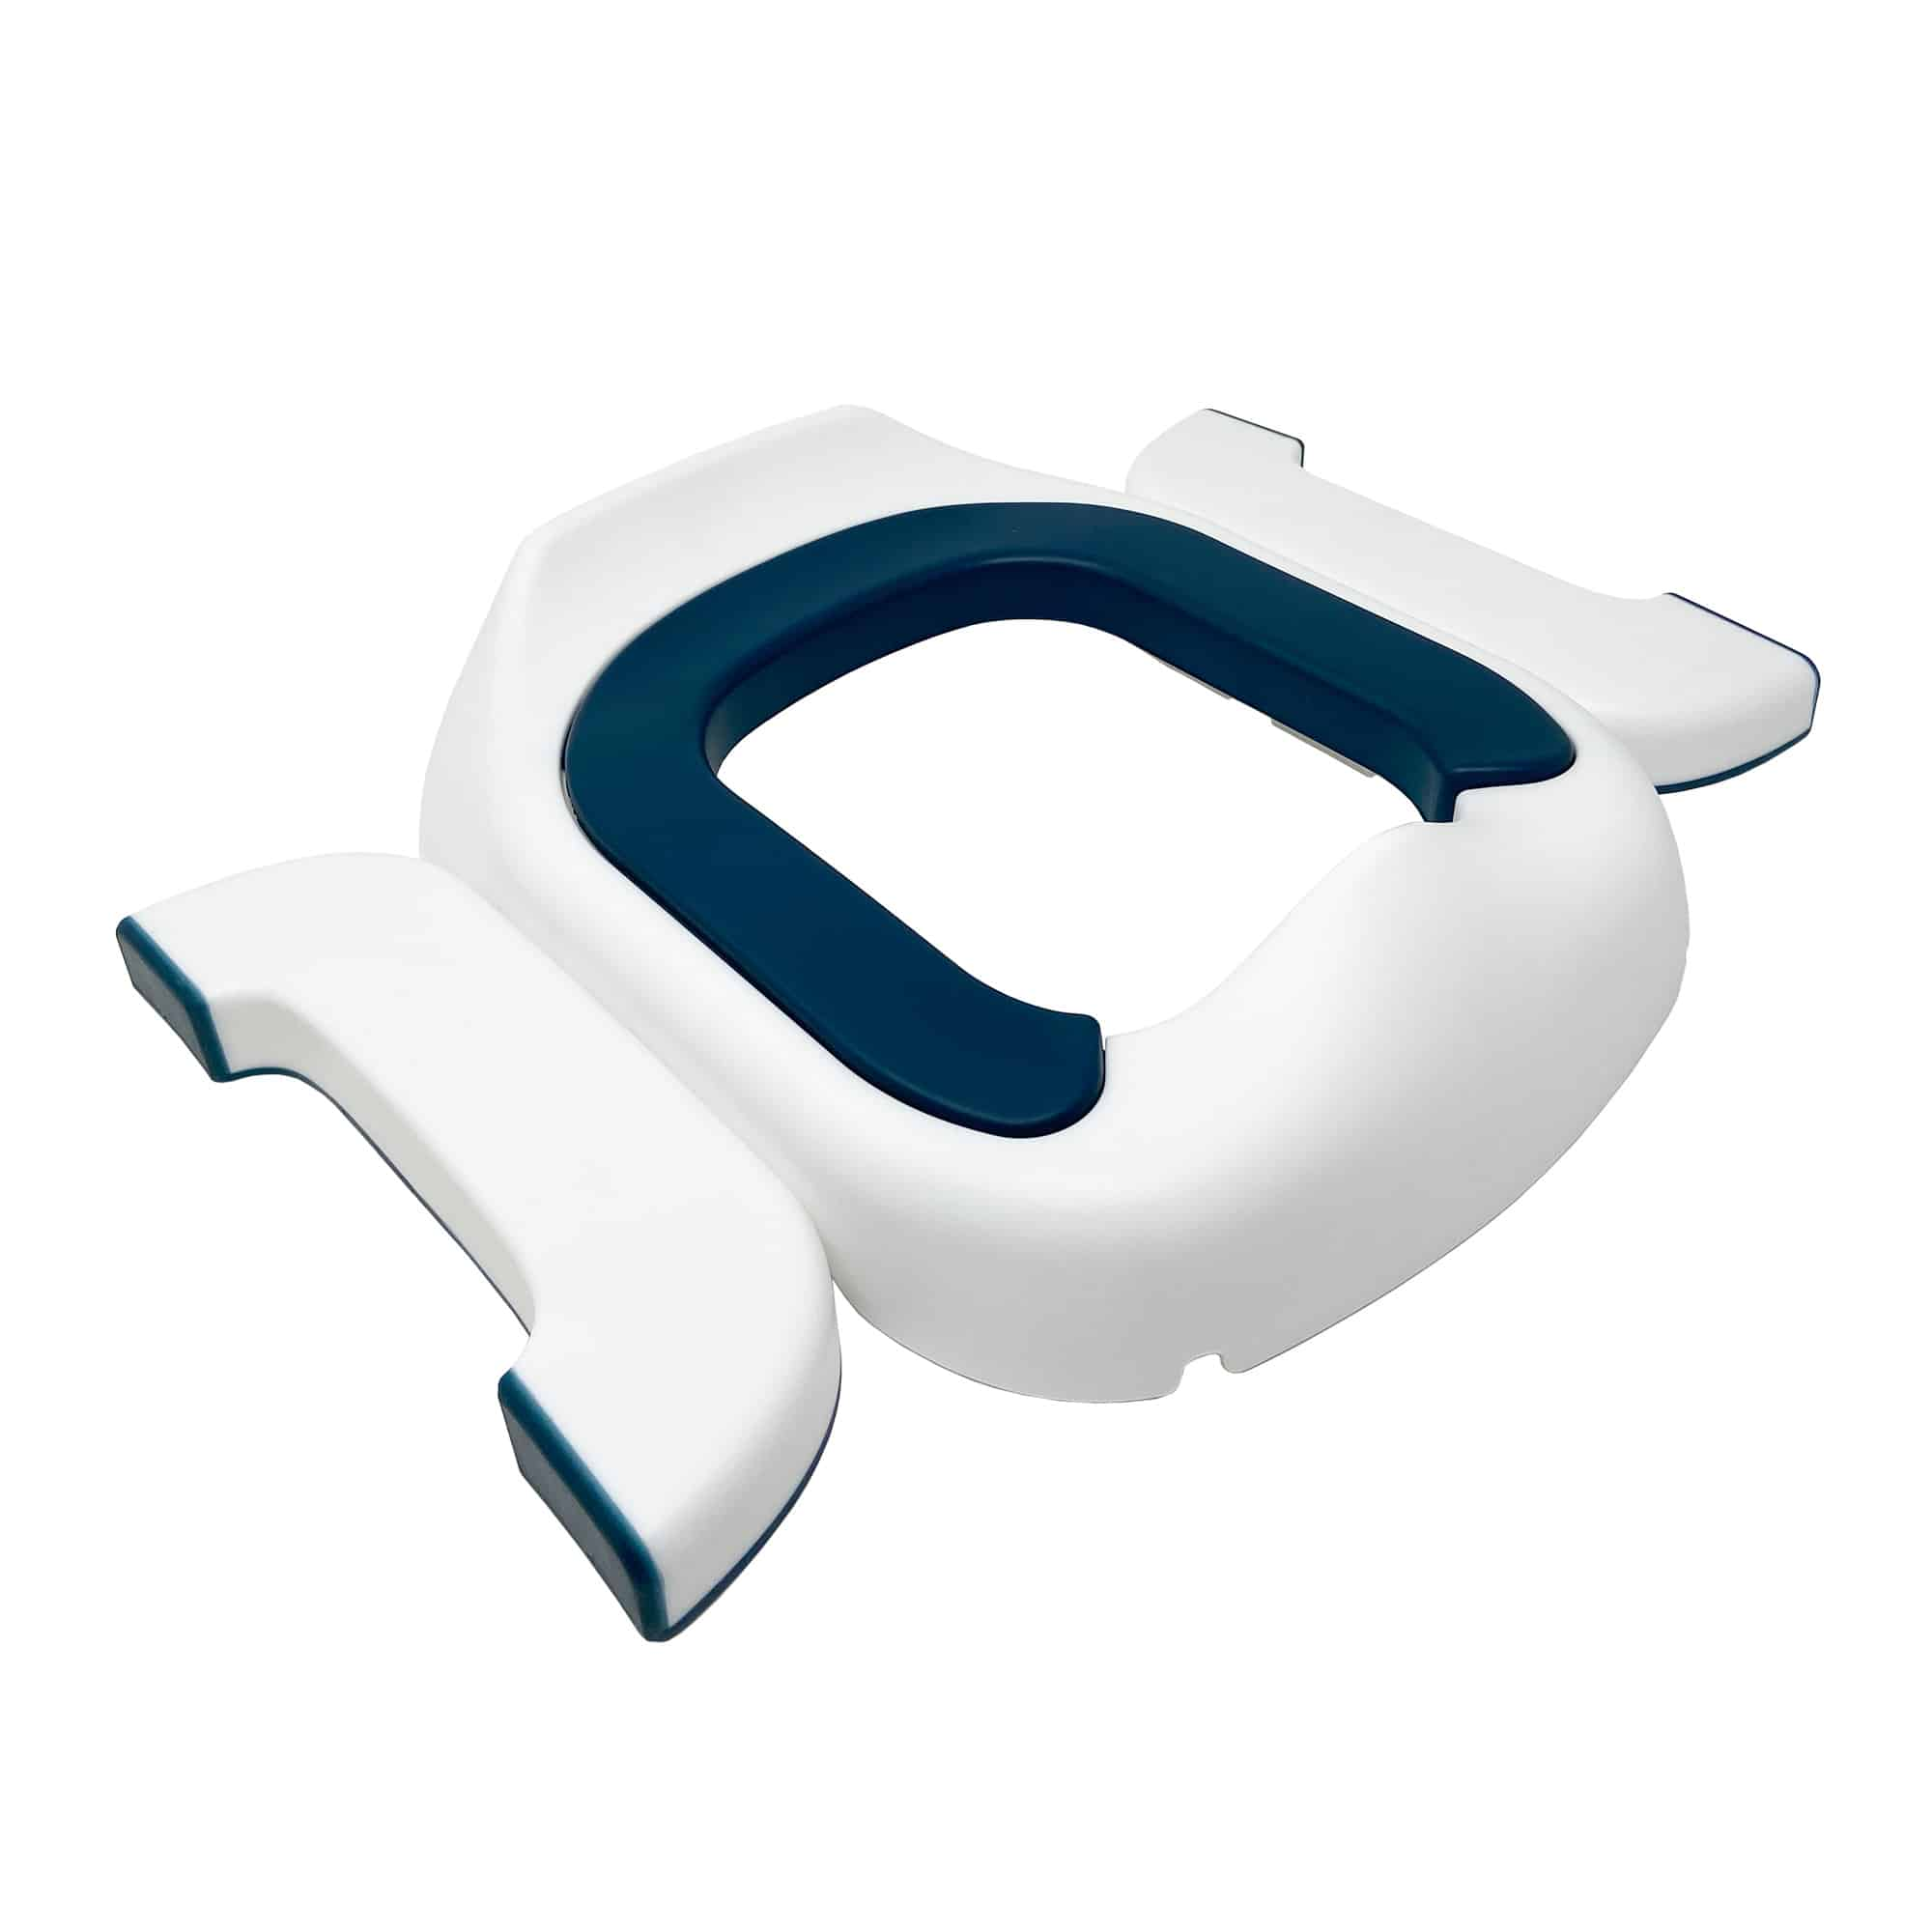 Blue Pote Plus travel potty with legs extended outward